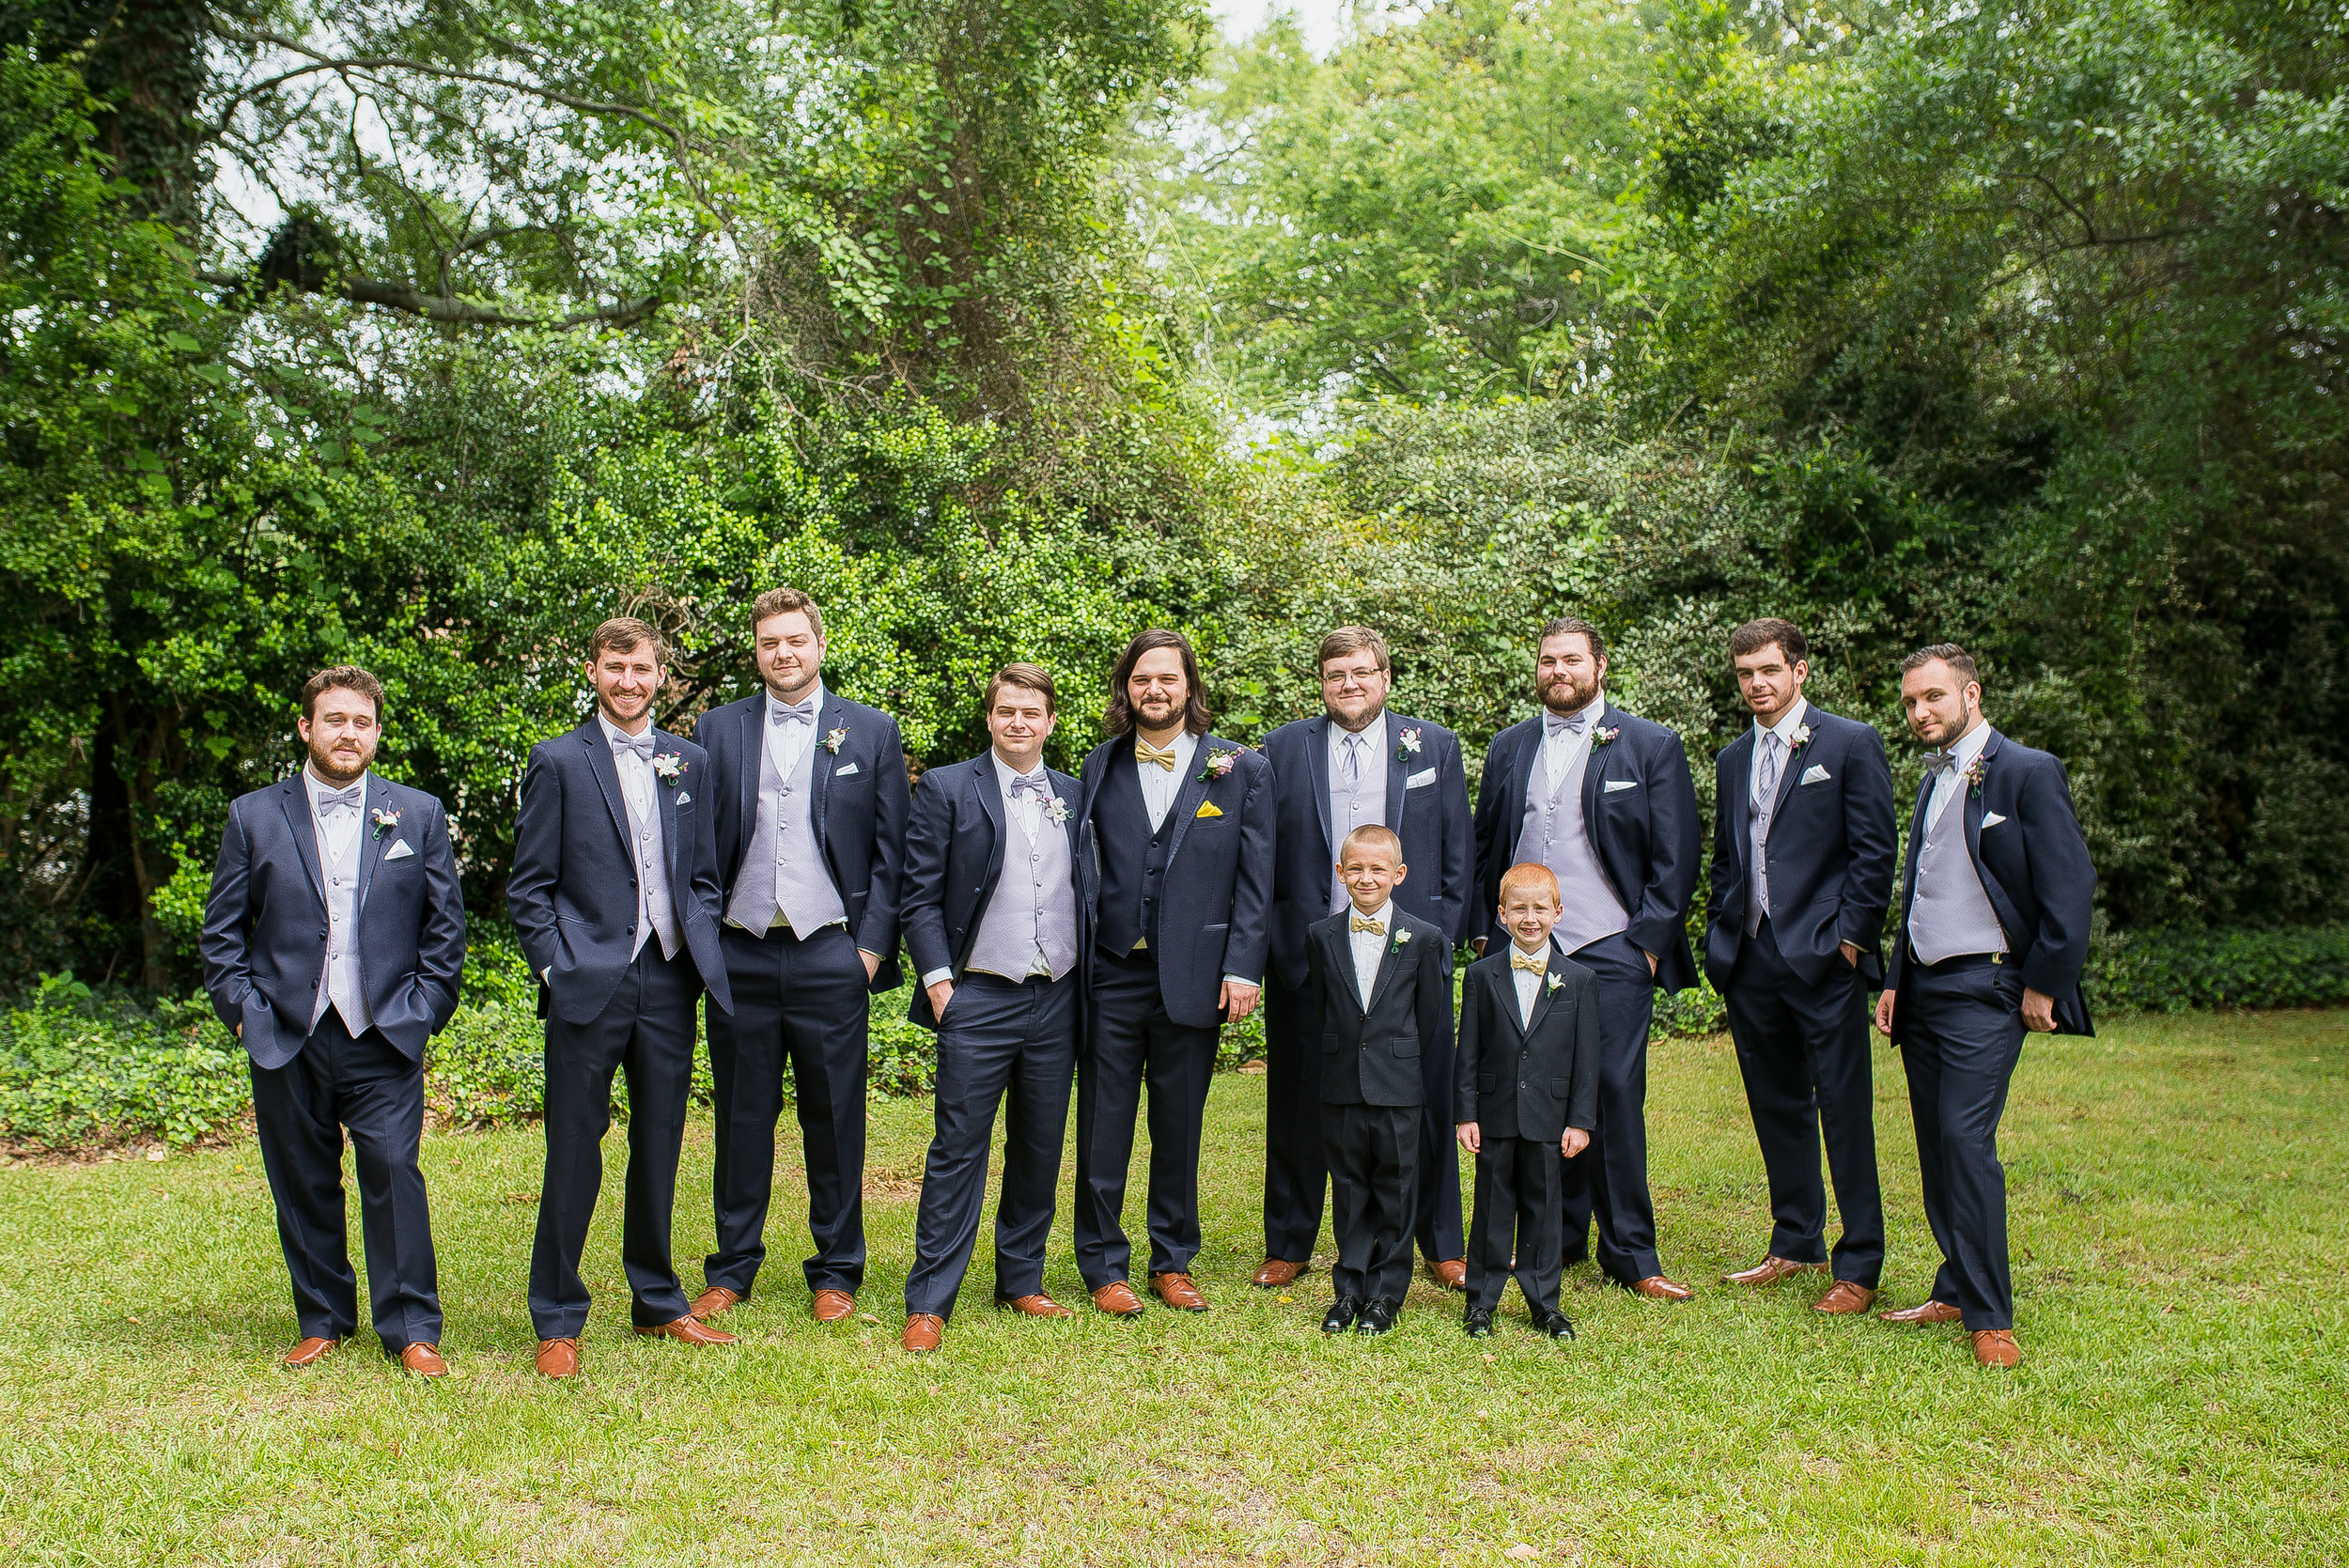 engineroommonroegaweddingphotographer